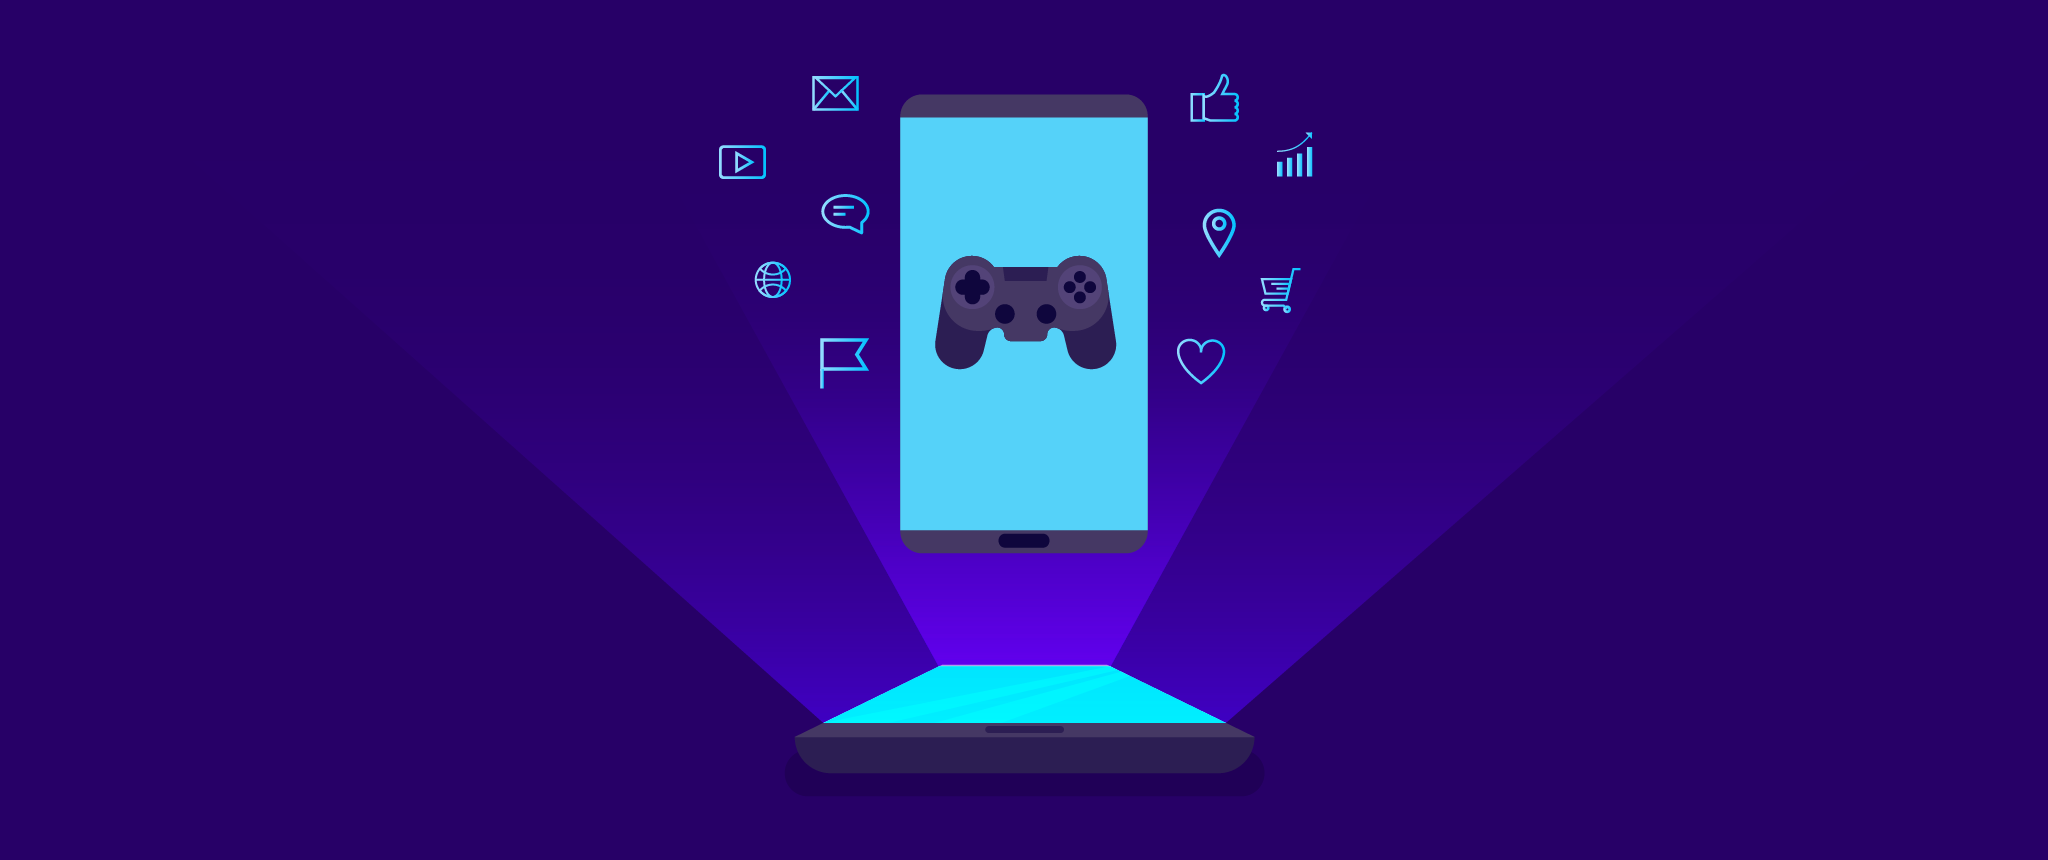 7 Ways to Gamify Your App - Mobile Marketing Insights by